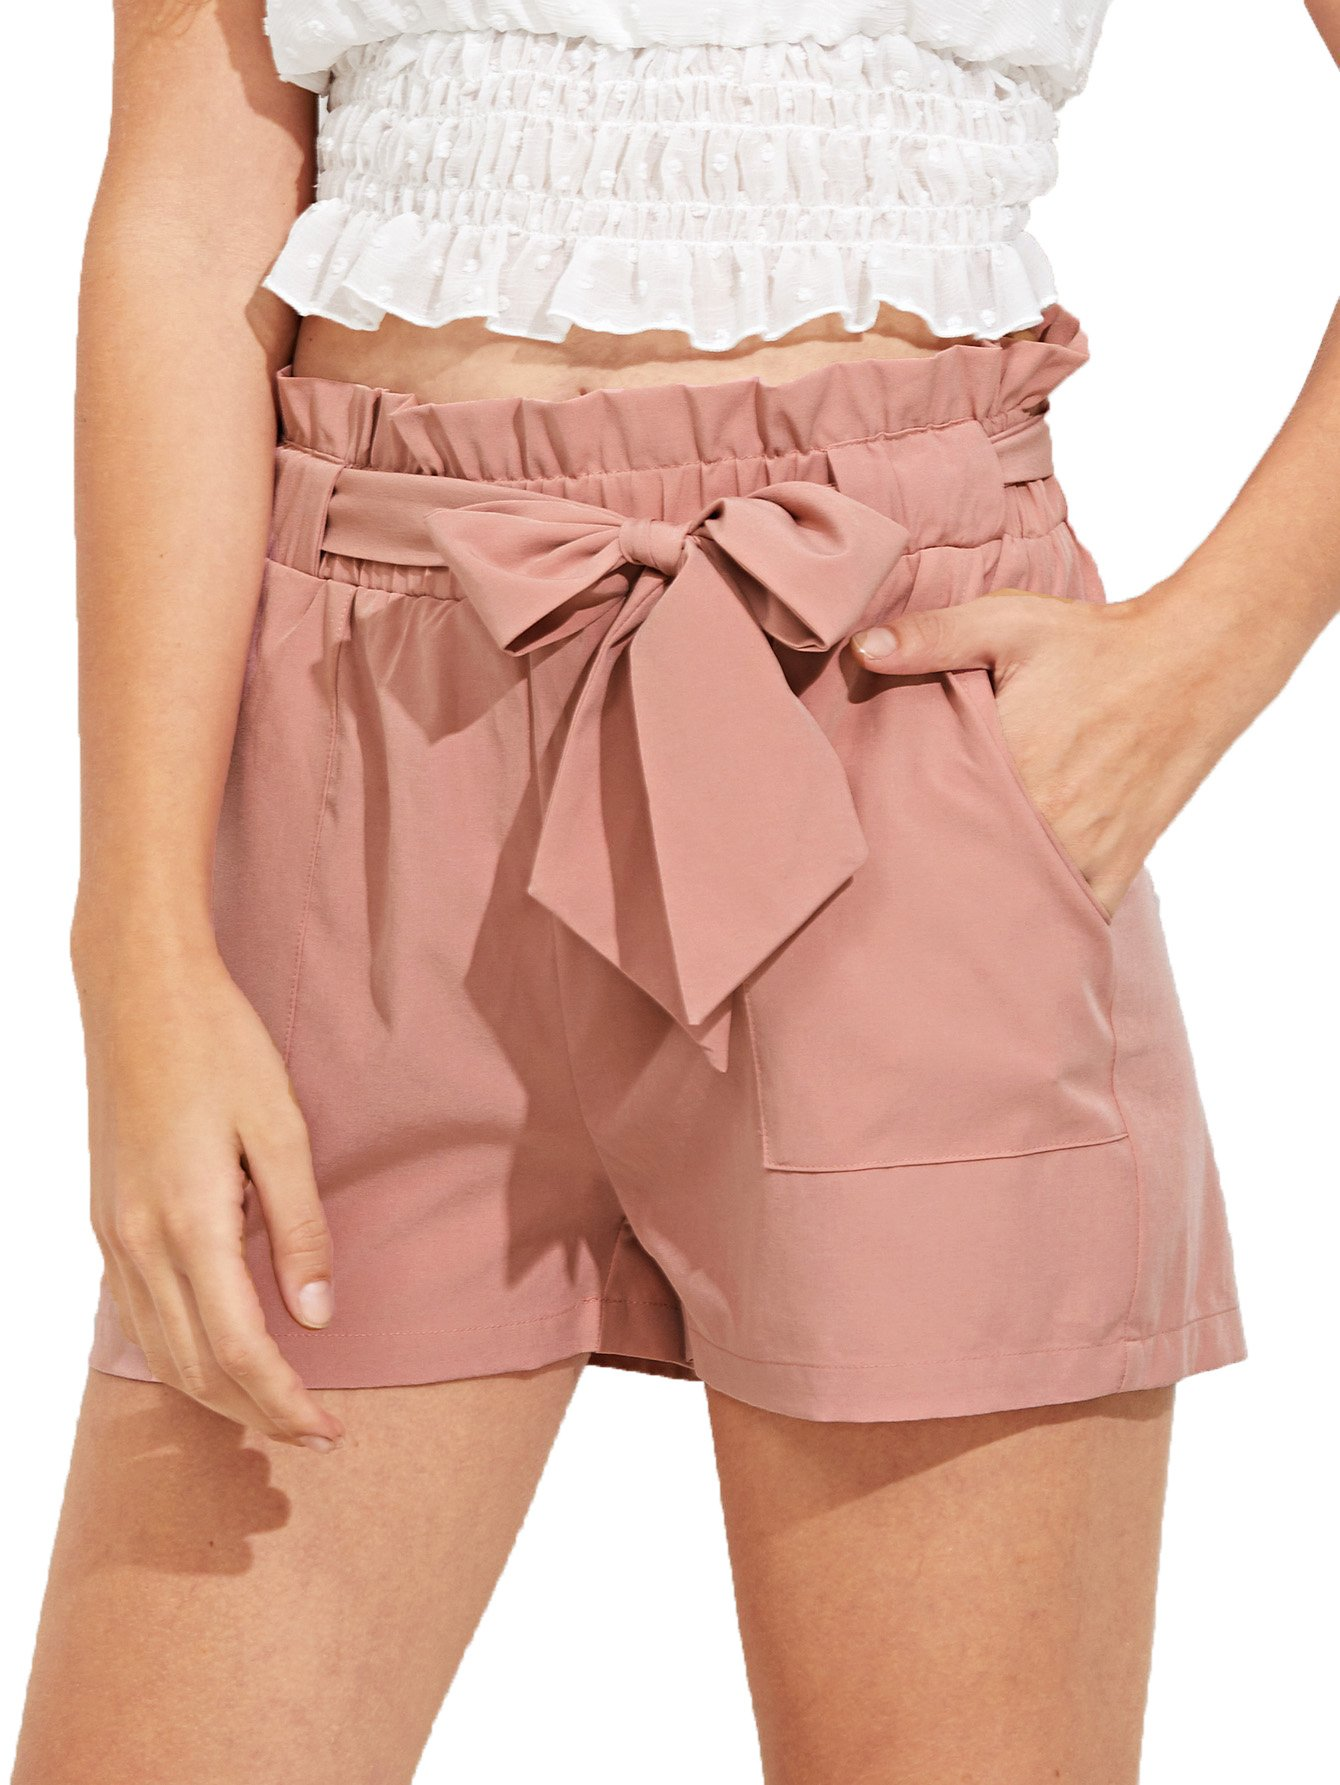 Romwe Women's Casual Elastic Waist Bowknot Summer Shorts with Pockets Pink S